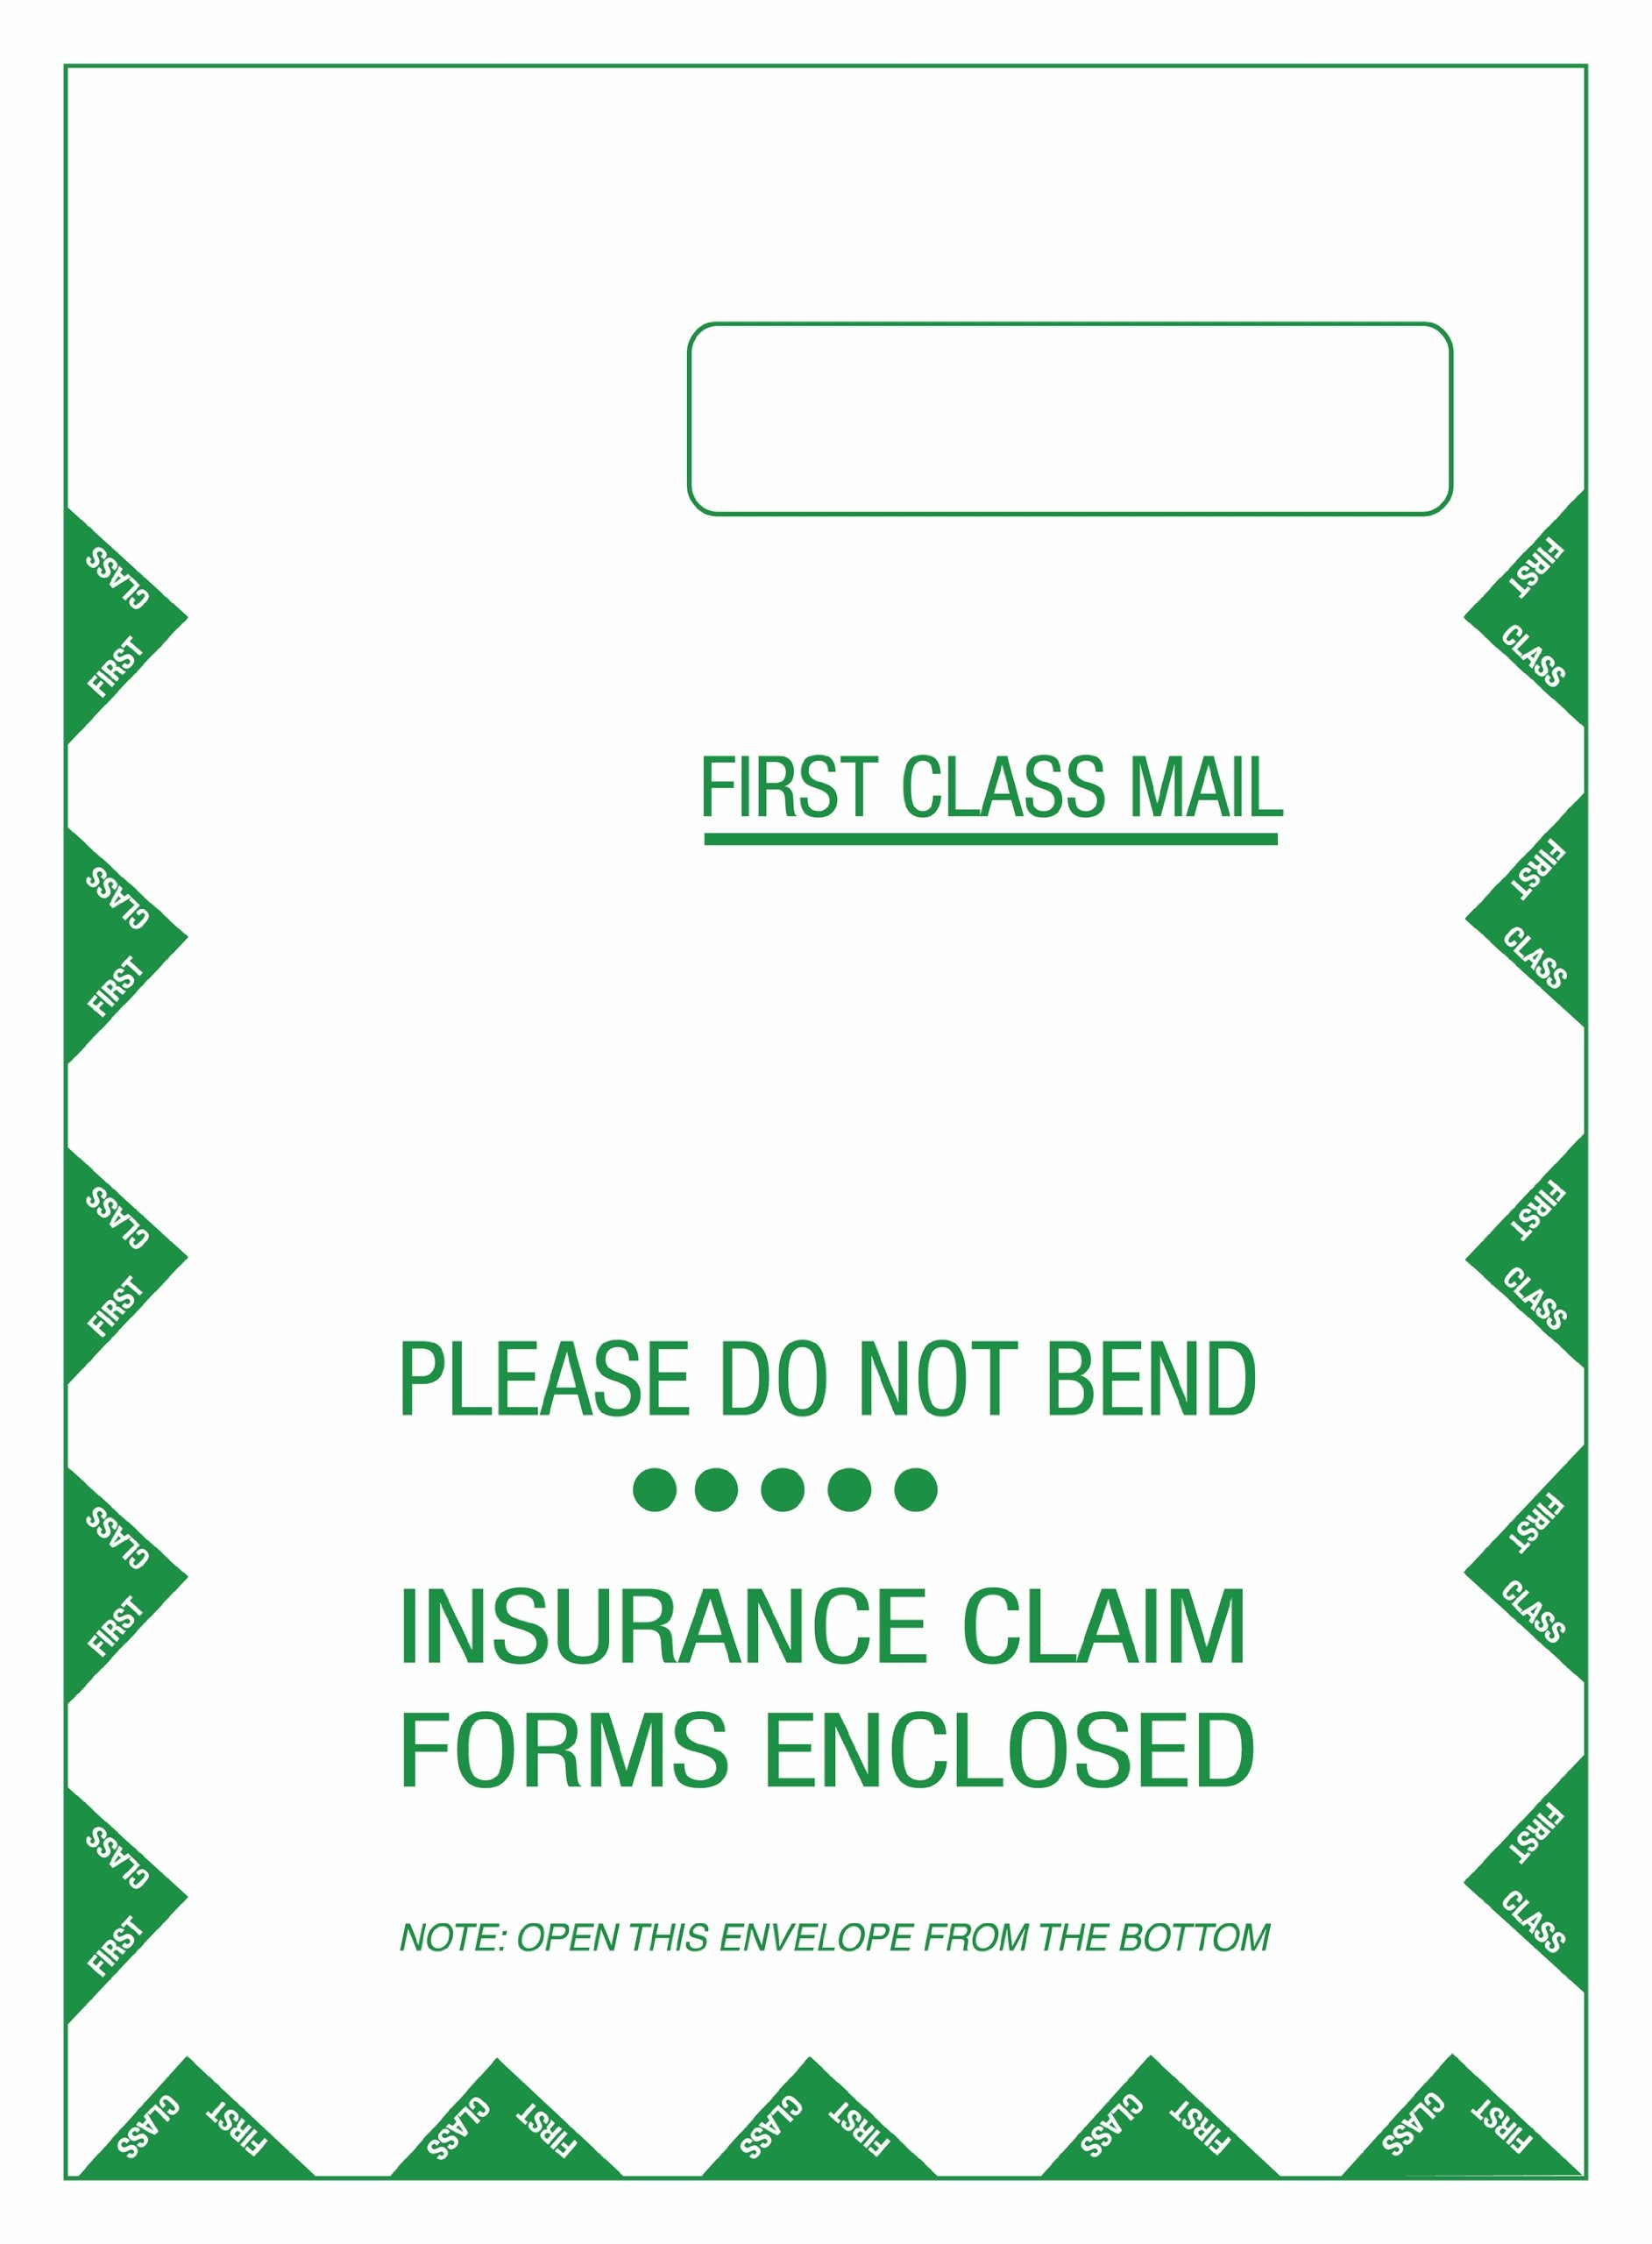 TOPS CMS-1500 Form Self-Seal Window Envelopes, Box of 500 (50992)